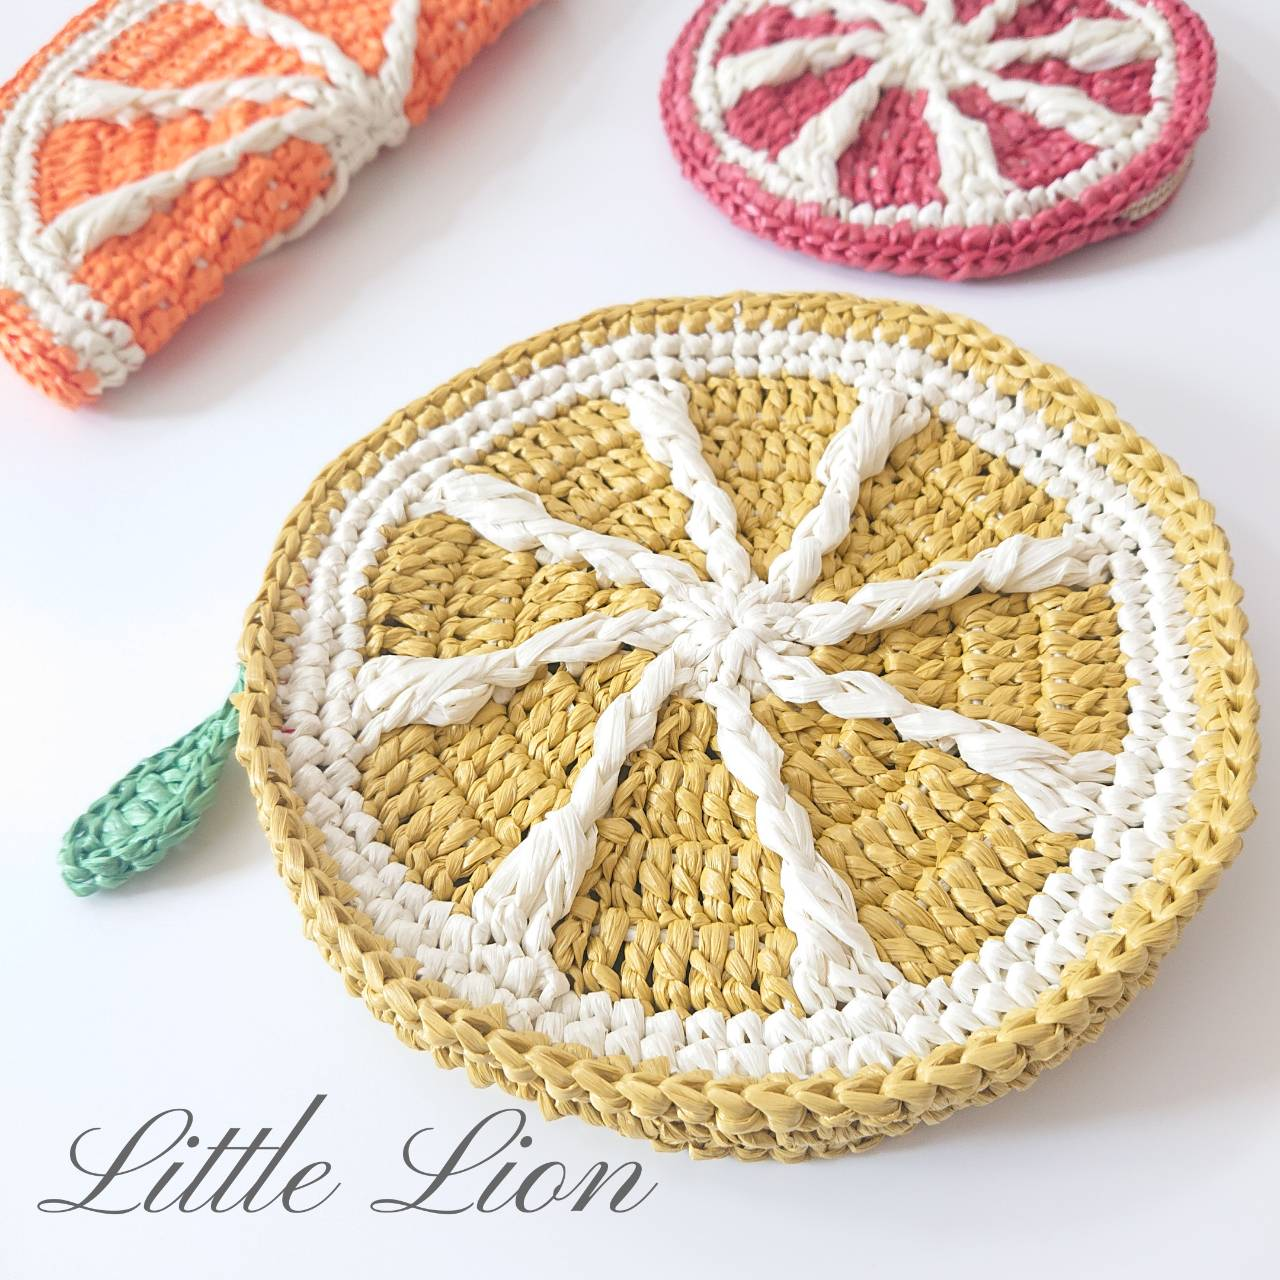 Lemon Coin Purse ~Variations of Fruit Pouch Bags①~